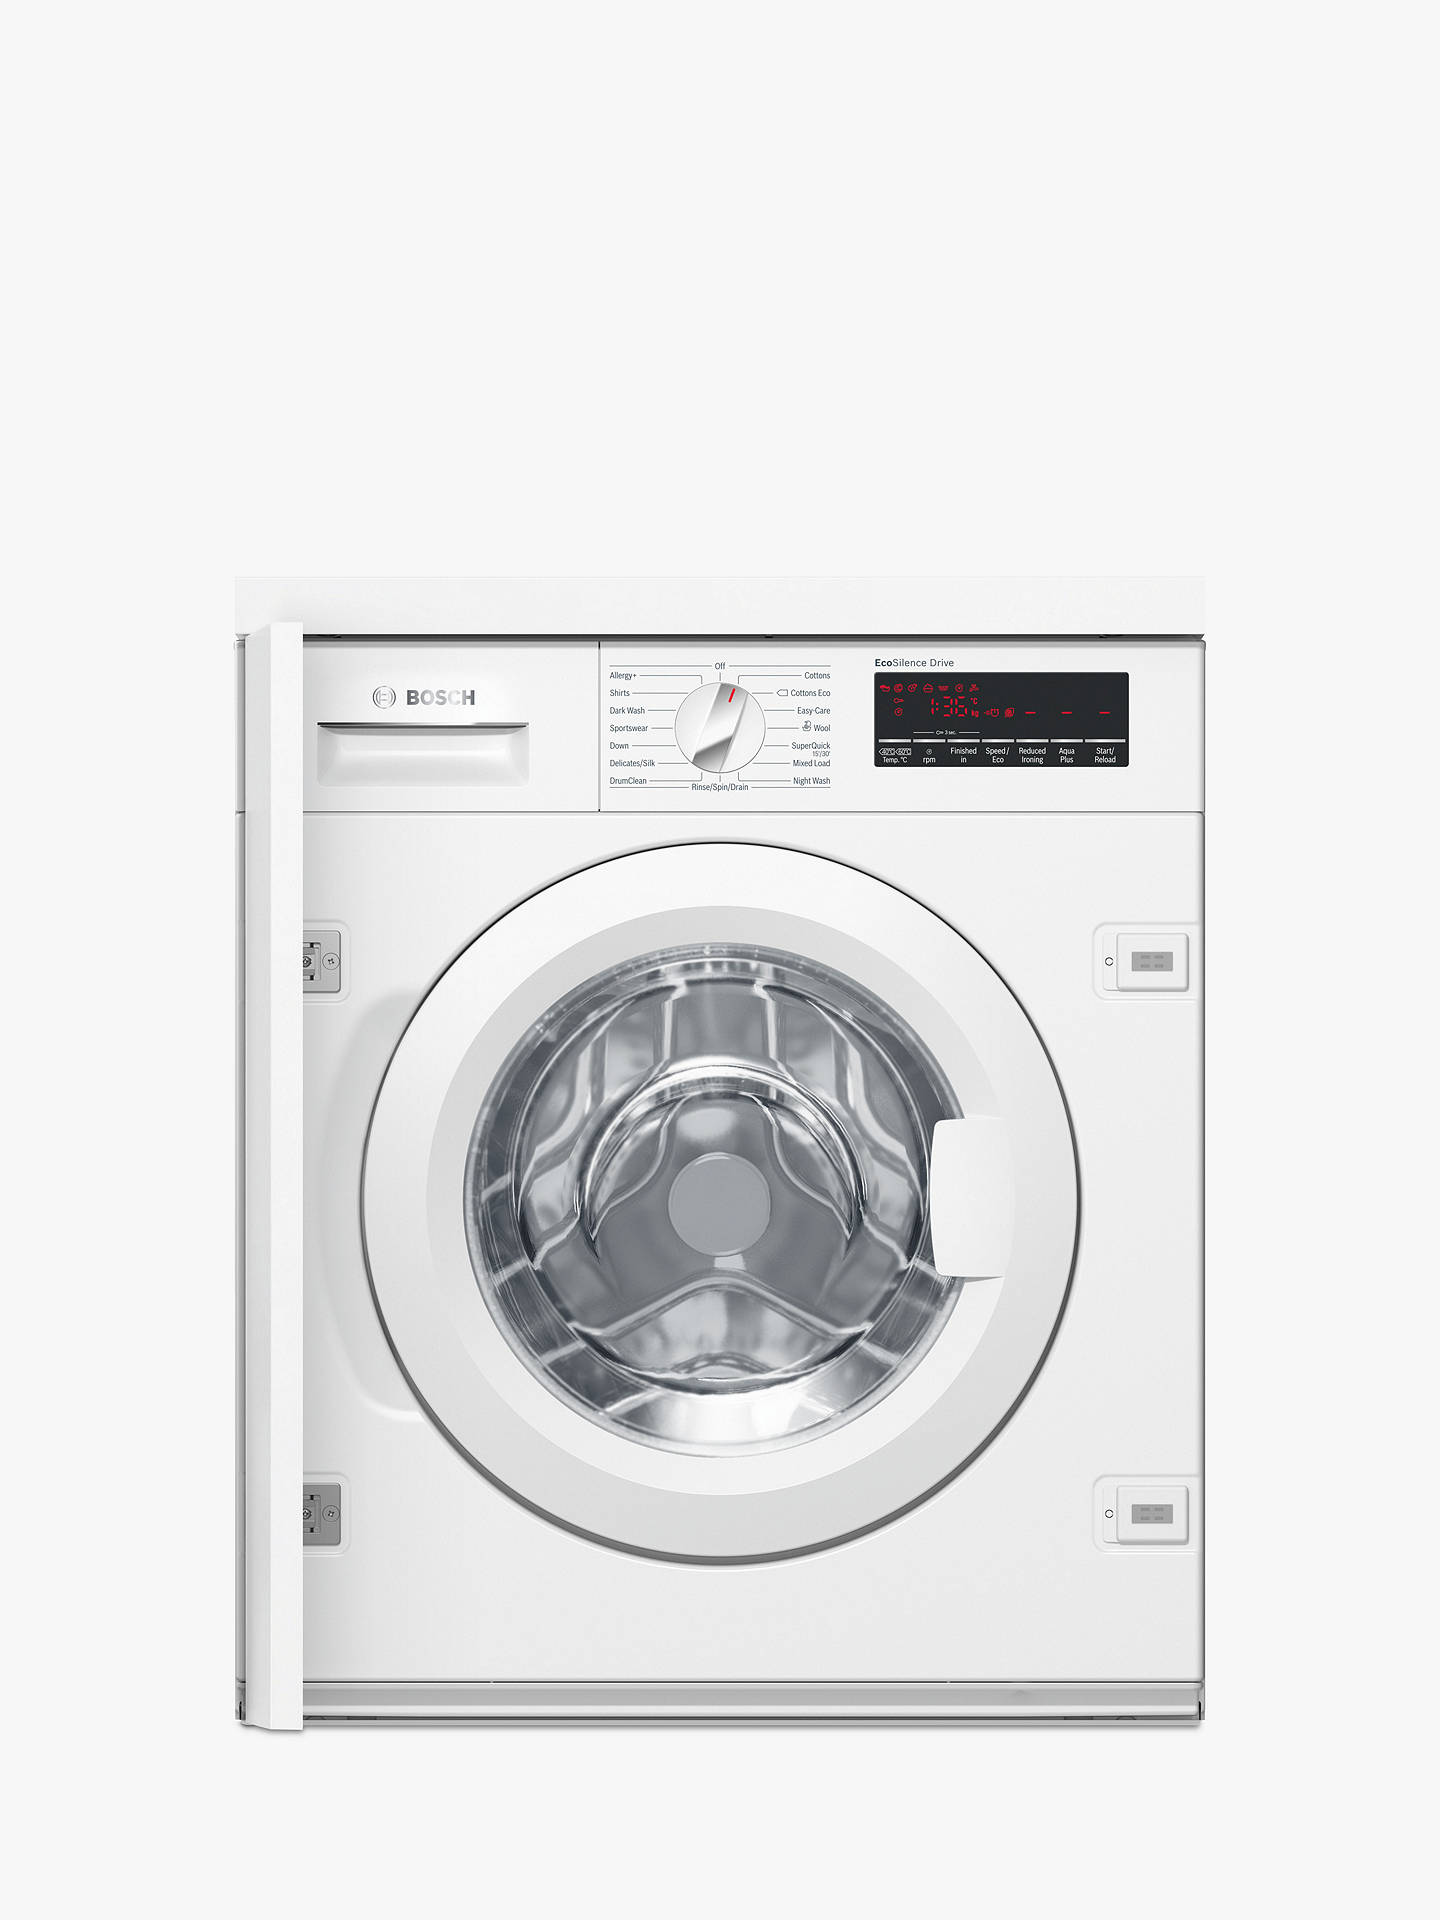 Bosch washing machines: brand features, a review of popular models, tips for buyers 78